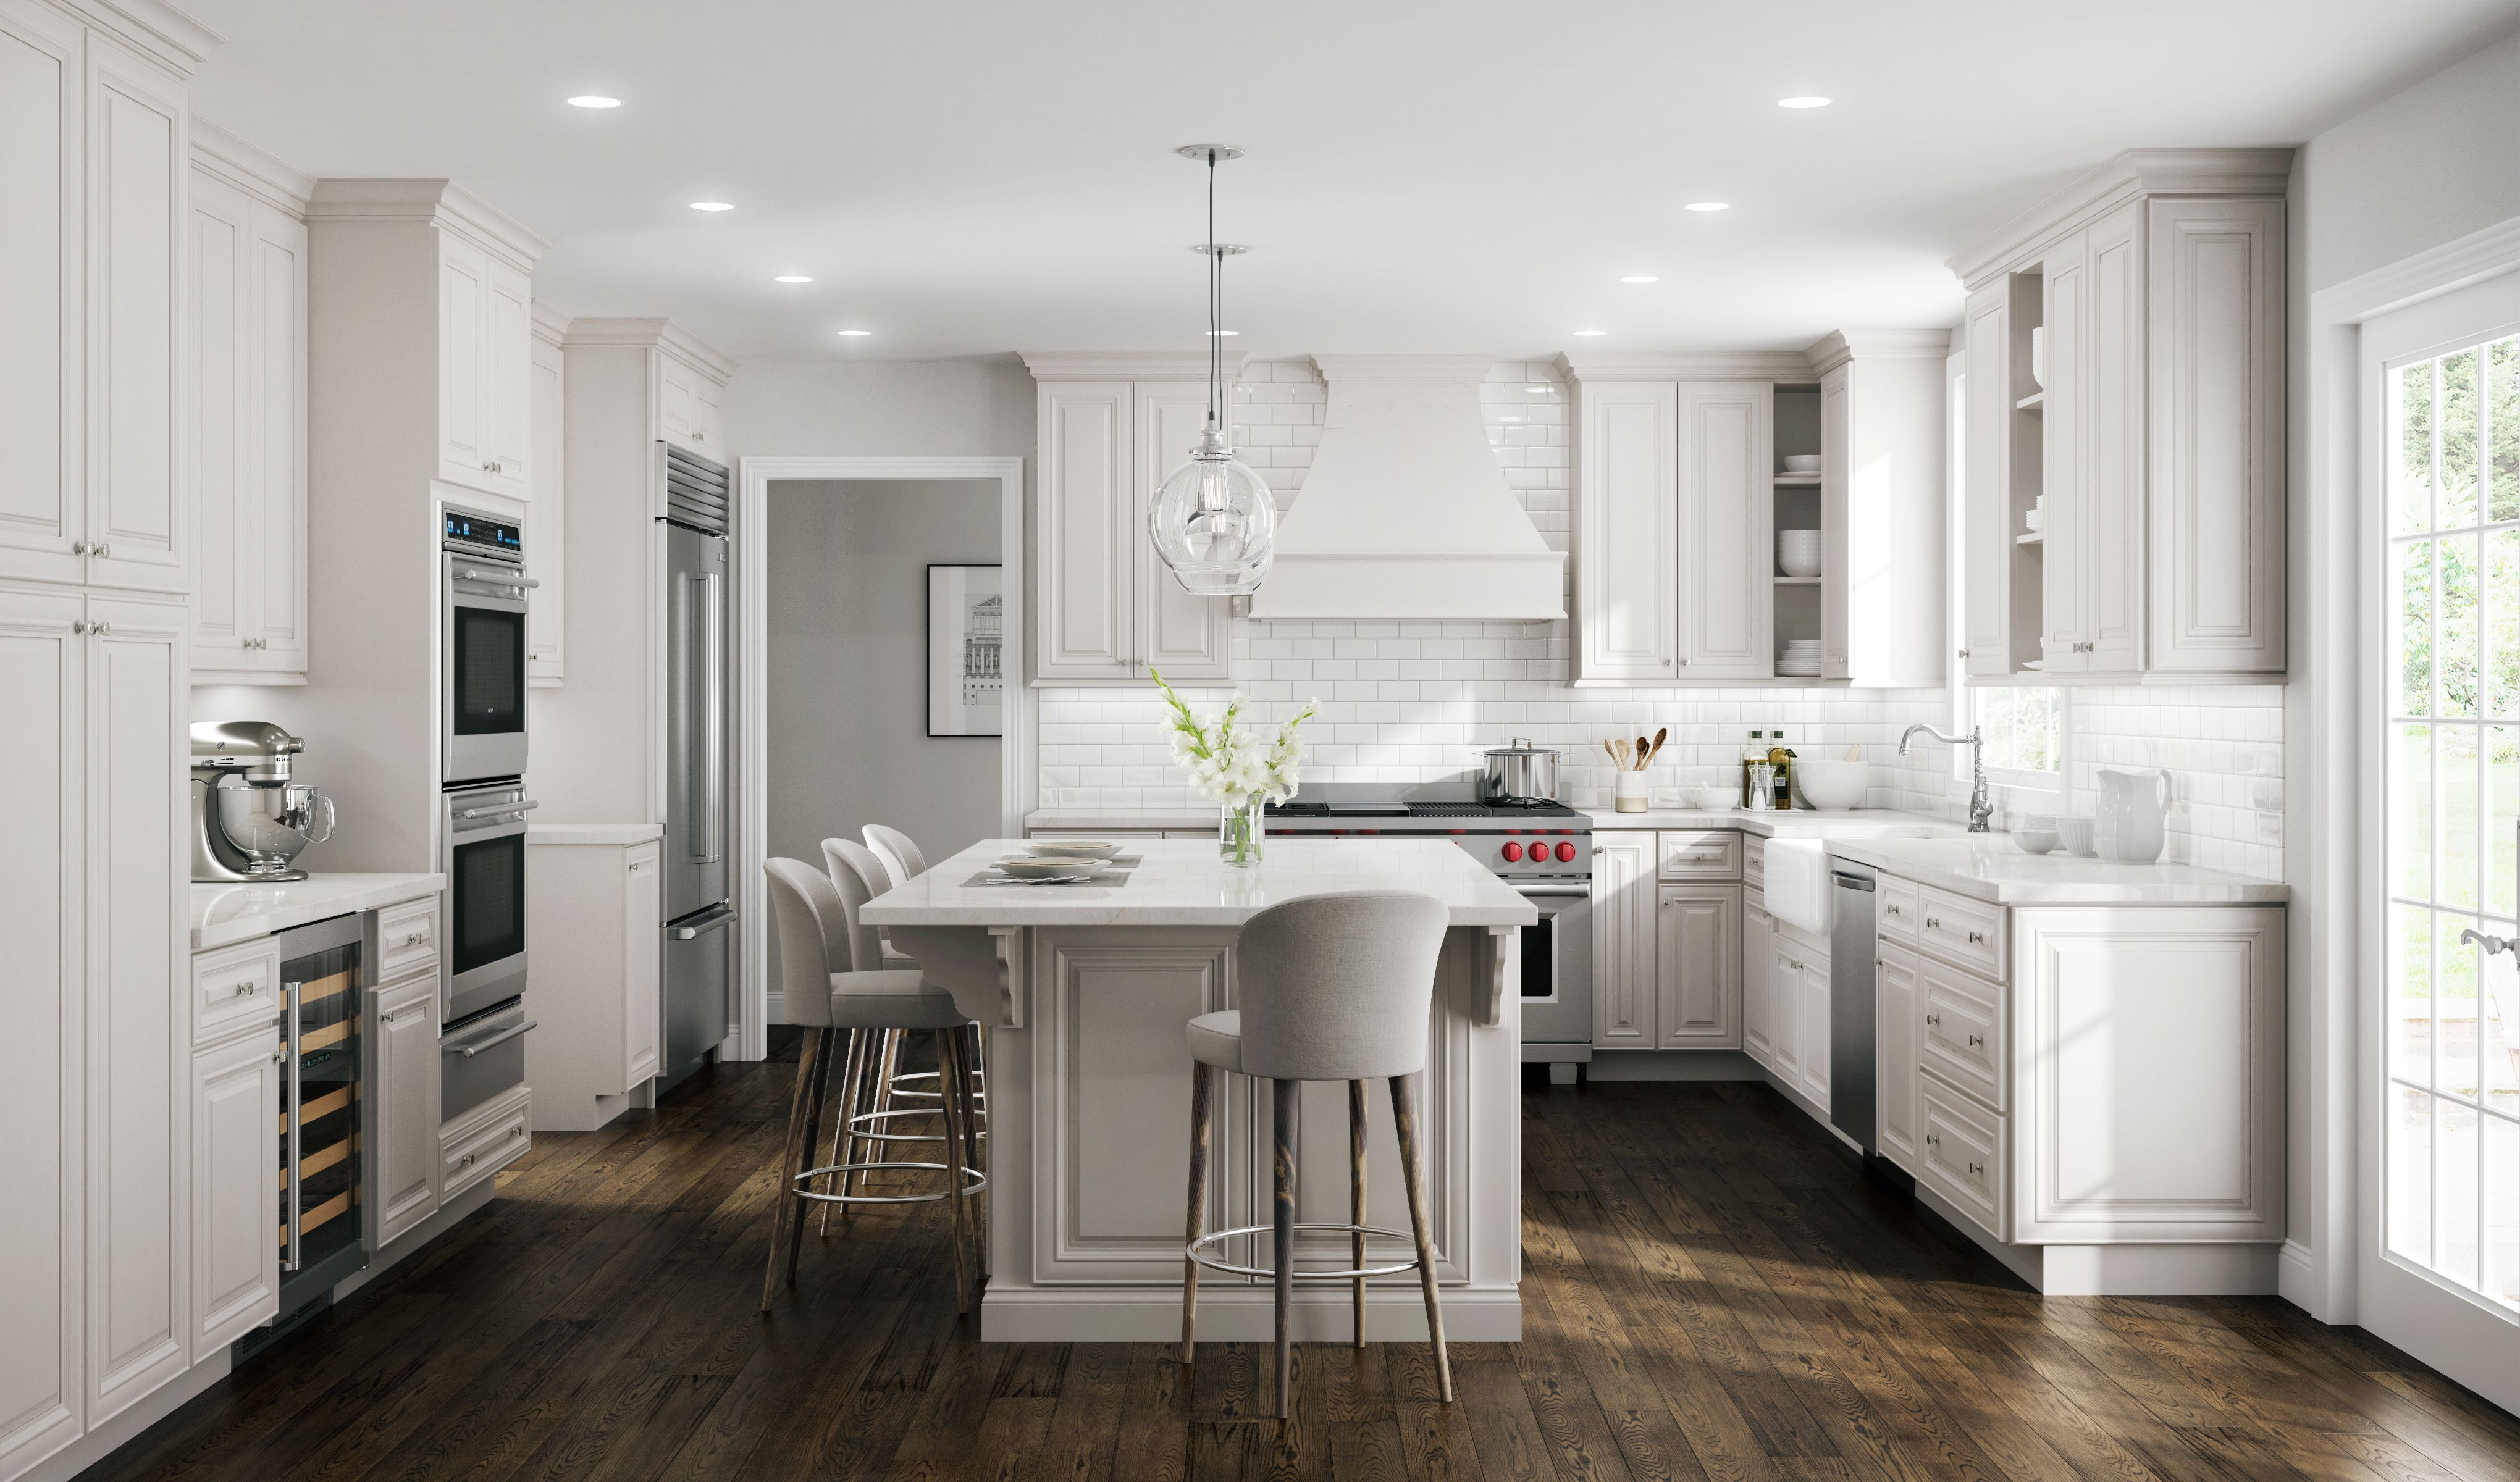 Lily Ann Cabinets Affordable Rta Cabinetry Wholesale Kitchen Cabinets Kitchen Cabinetry Kitchen Design